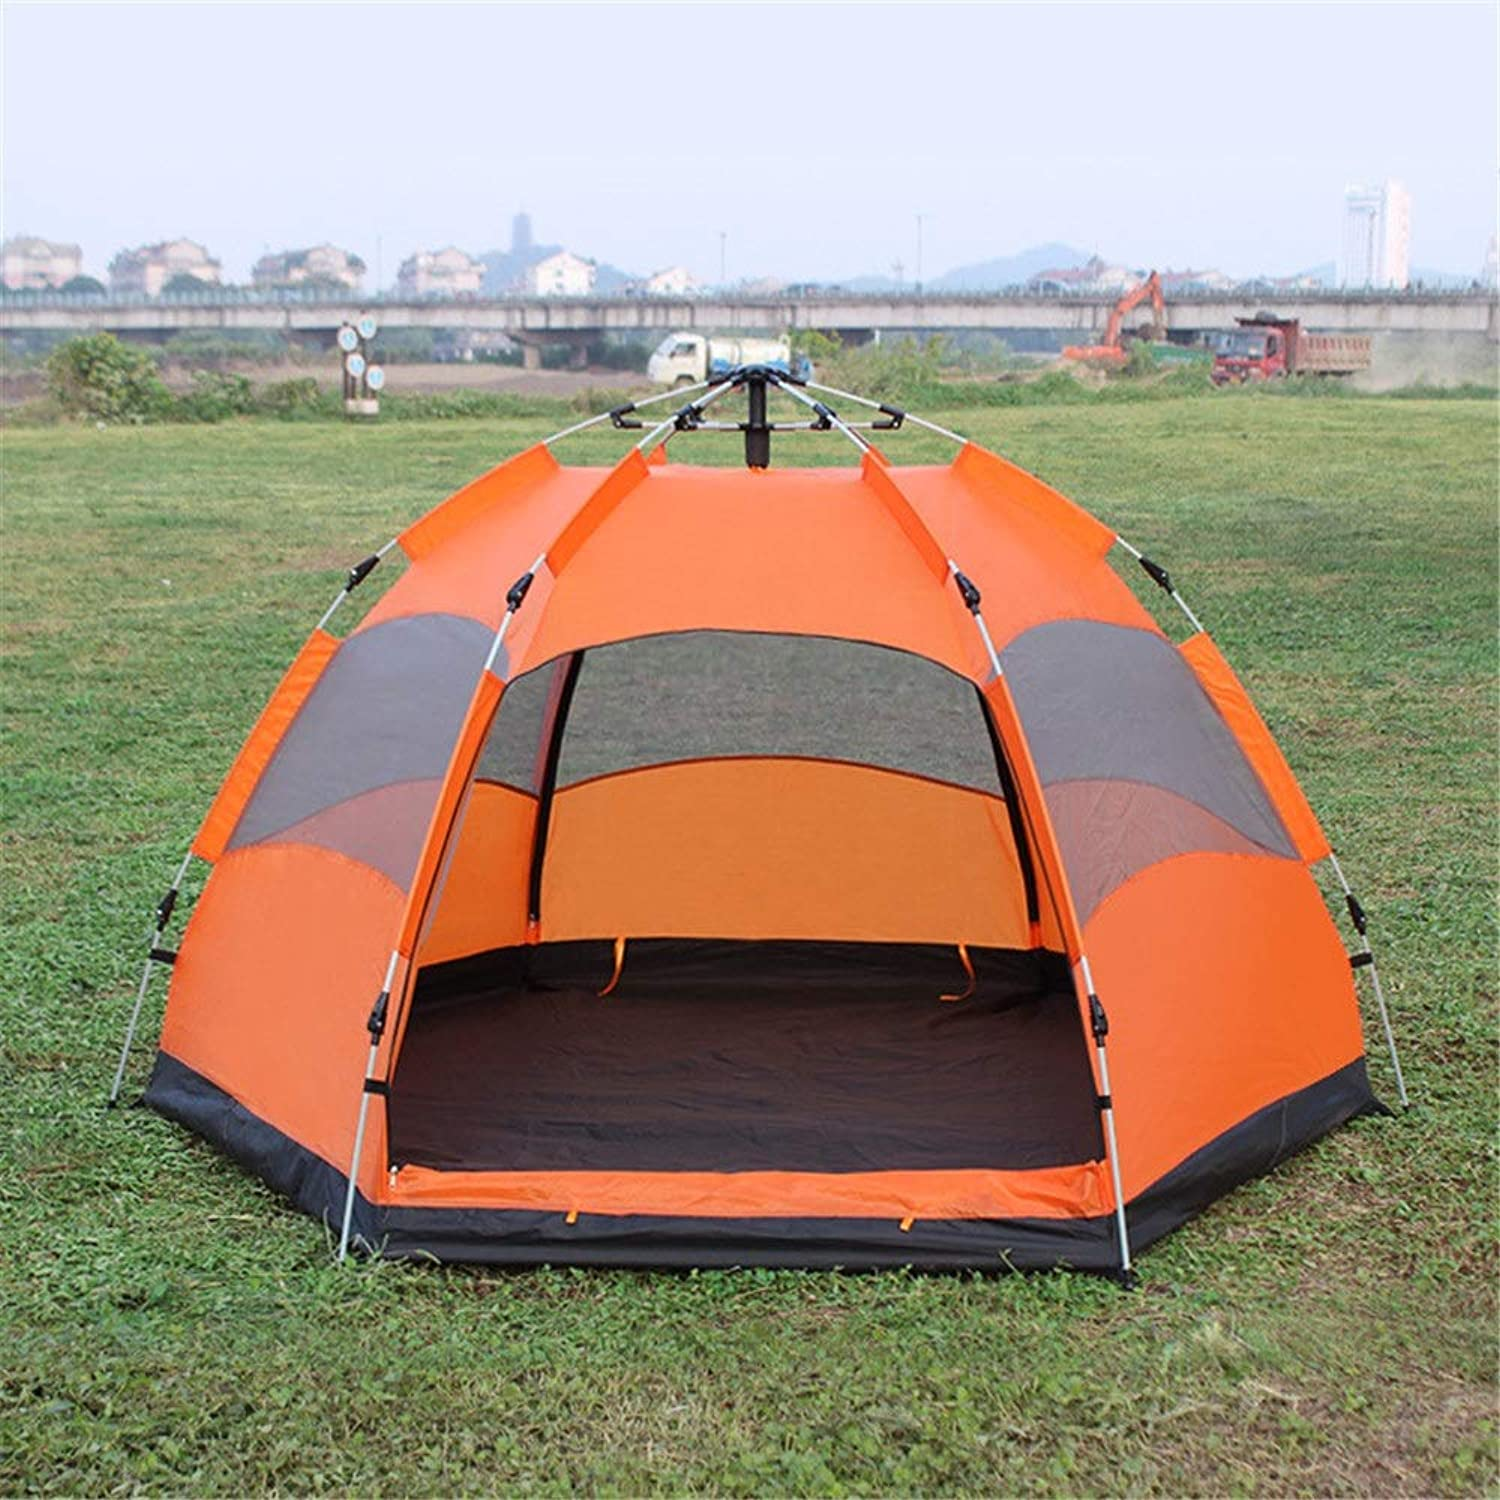 Outdoor Tent Double Layer Camping Tent Wild Camping Outdoor 35 Person Rainproof Tent Sunshade Rain Waterproof UV Predected (color   orange, Size   240cm240cm130cm)